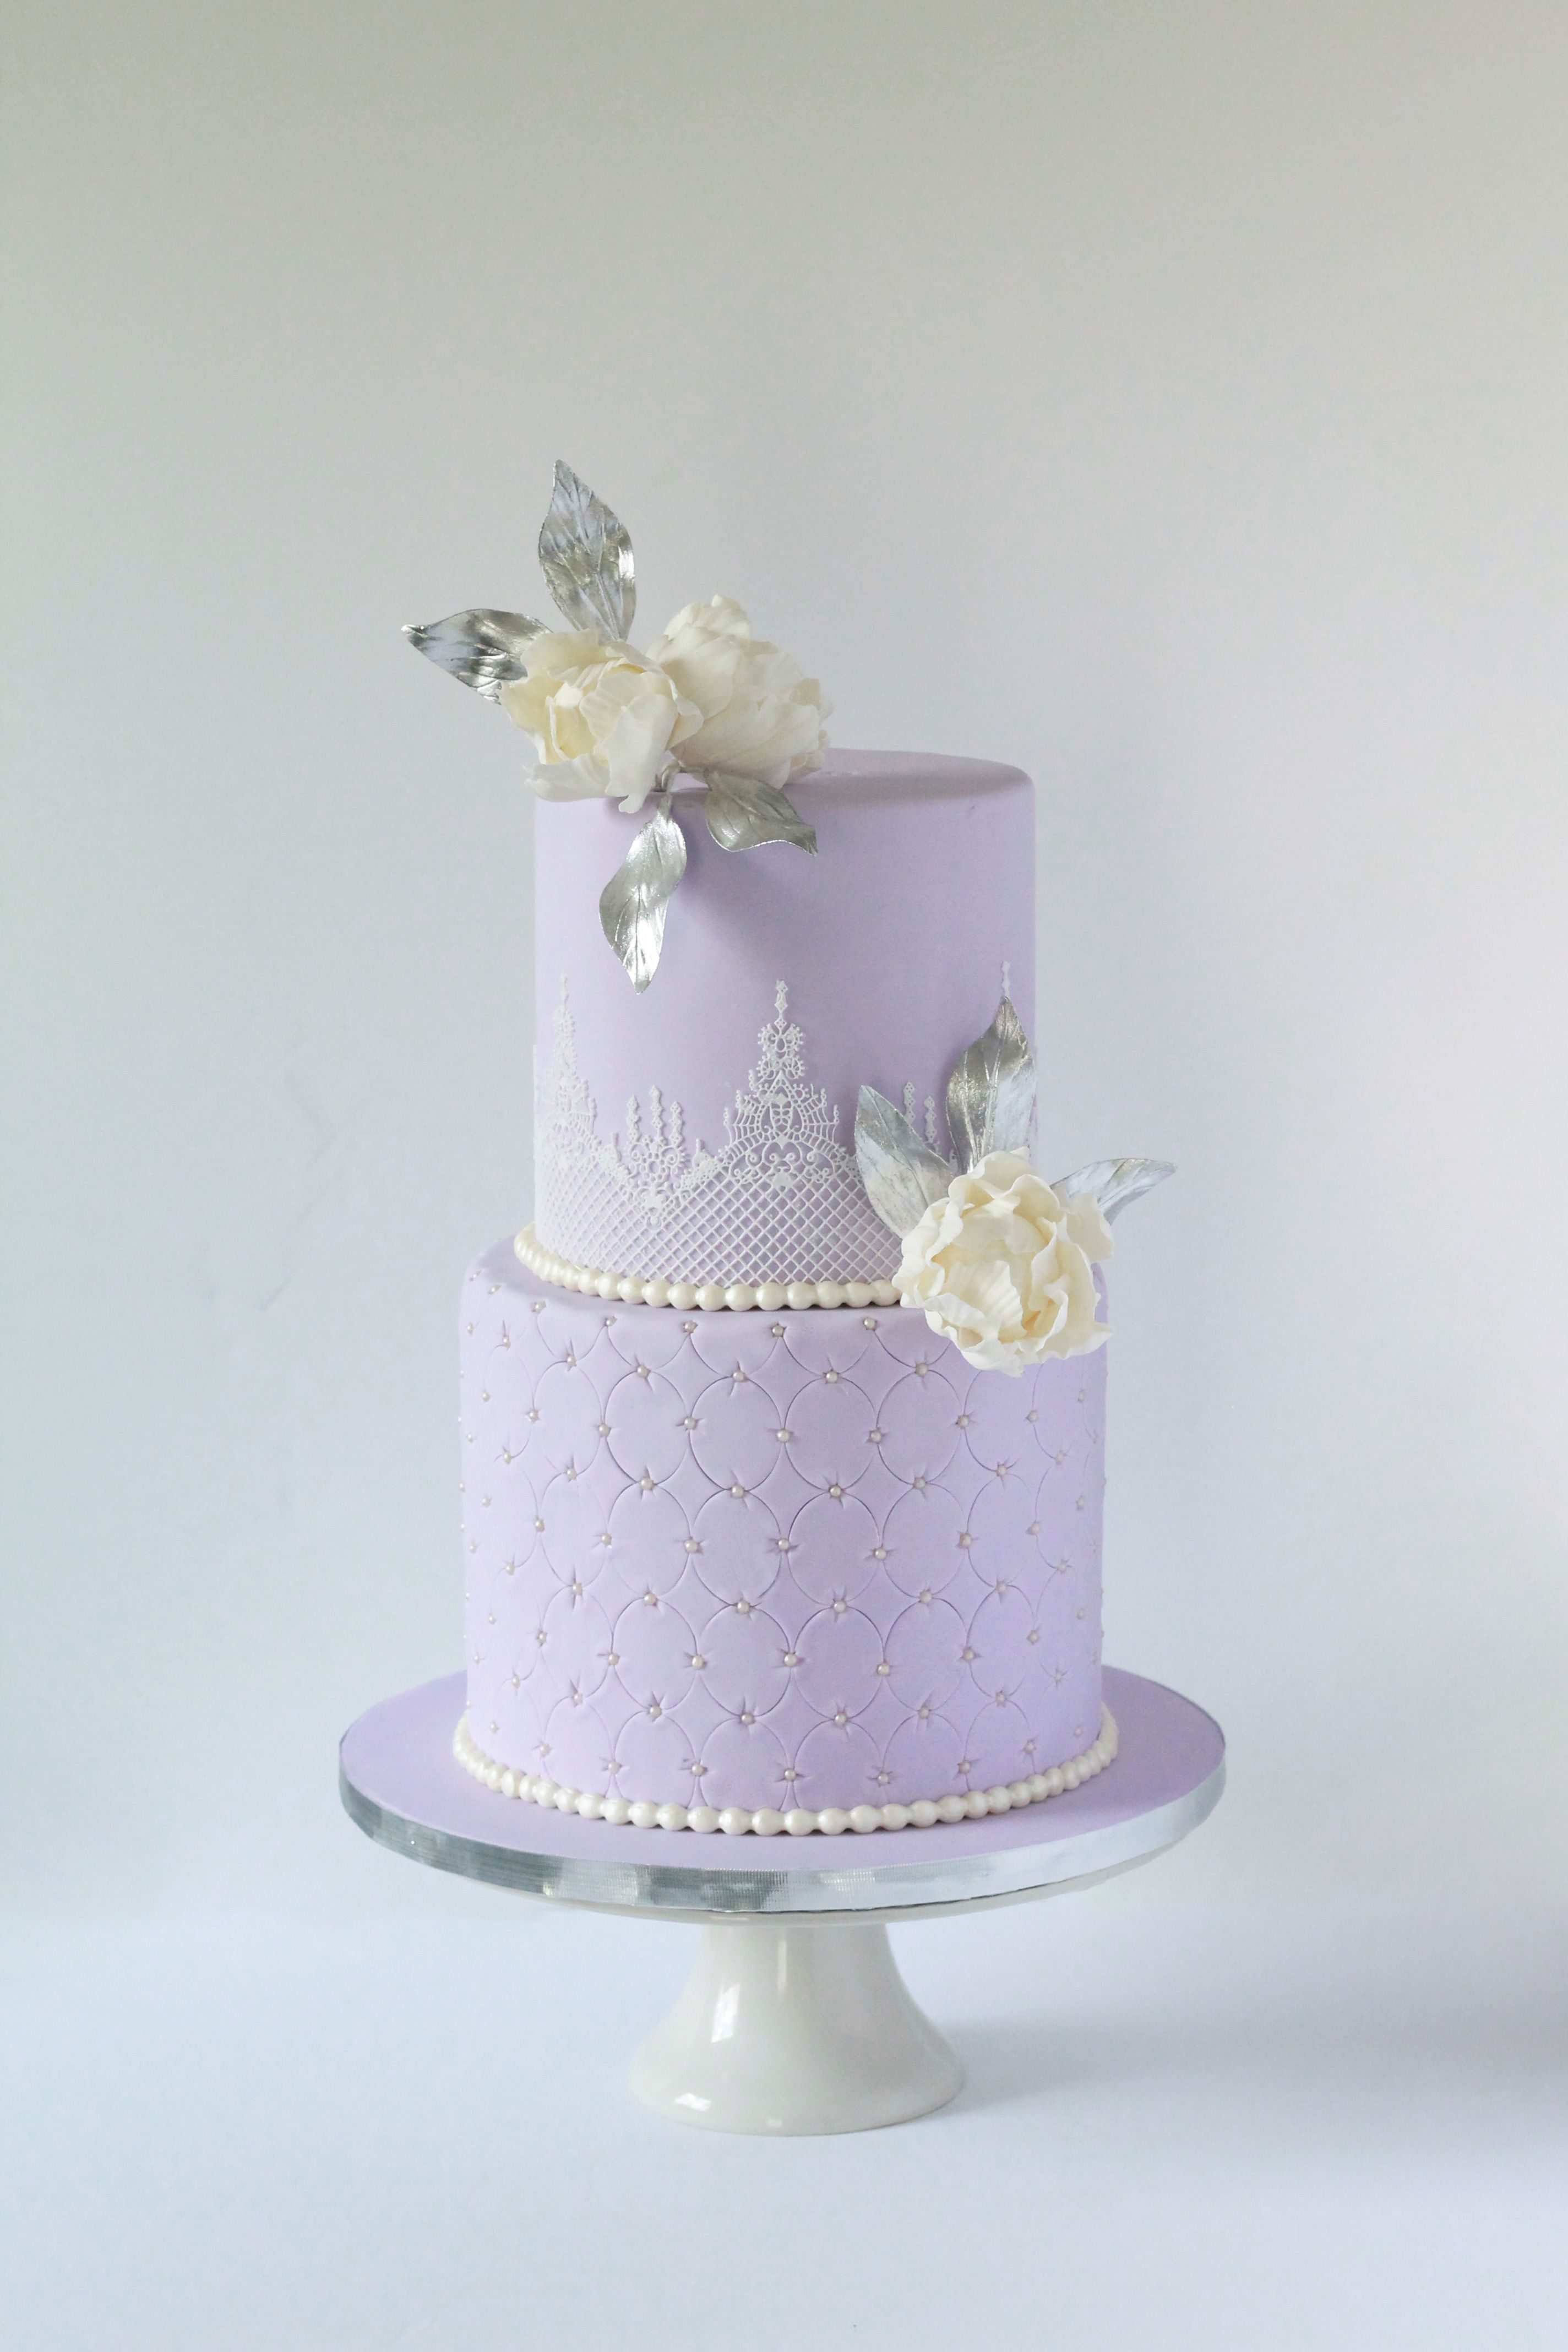 Romantic Lilac And Silver Vintage Wedding Cake With Lace And White Flowers Lilacweddingc Wedding Cake Fresh Flowers Lavender Wedding Cake Wedding Cakes Lilac